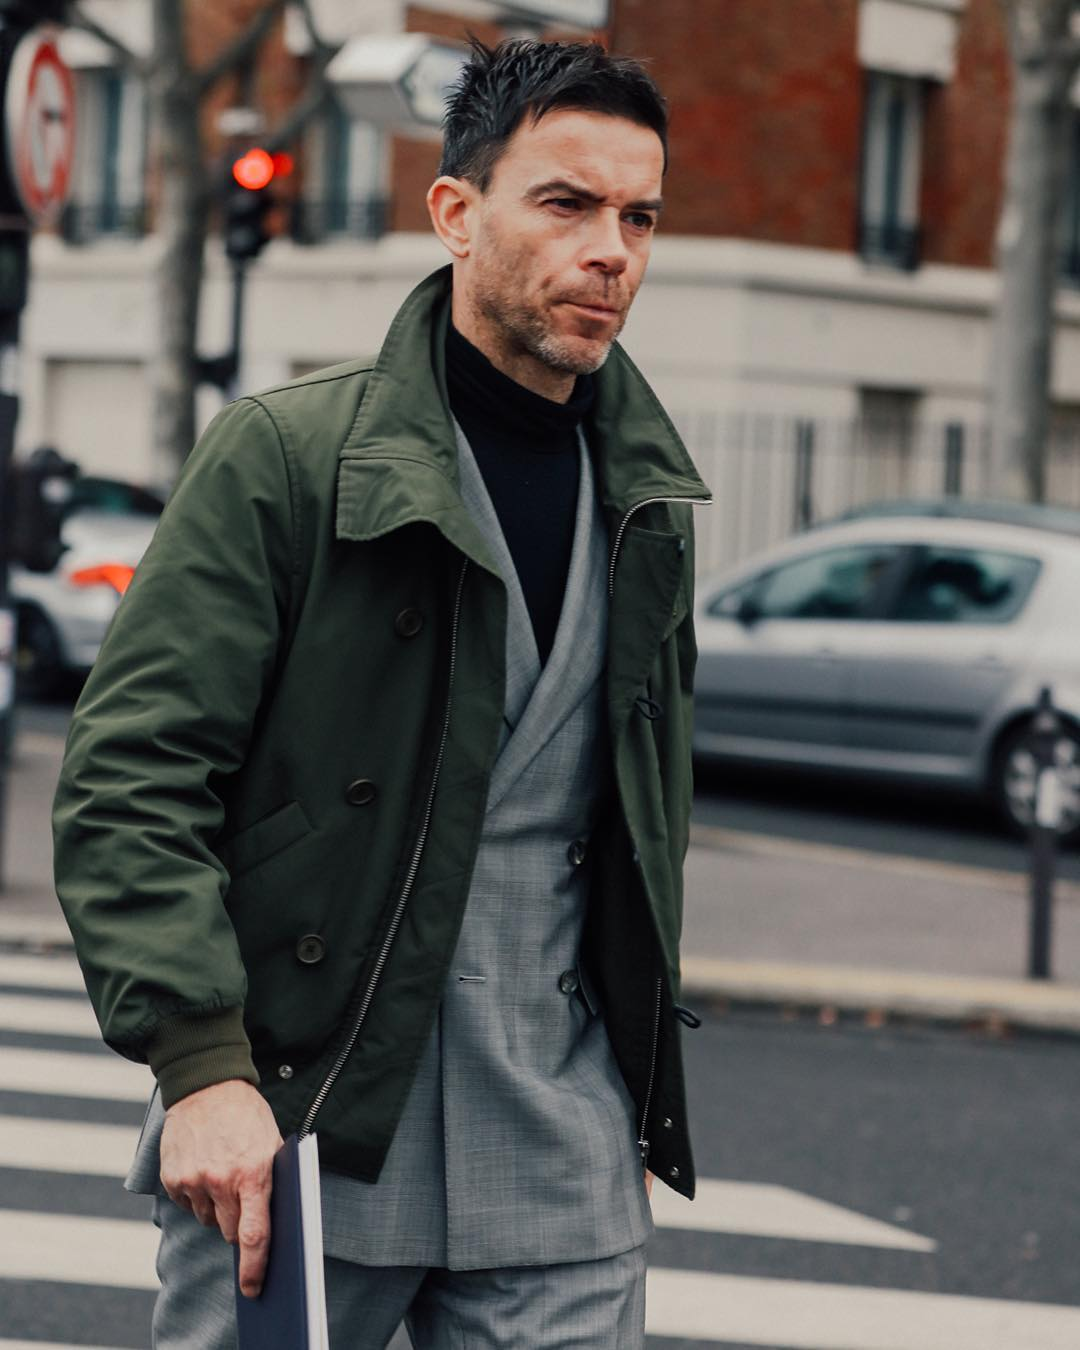 fav-looks-from-paris-fashionwonderer (61)